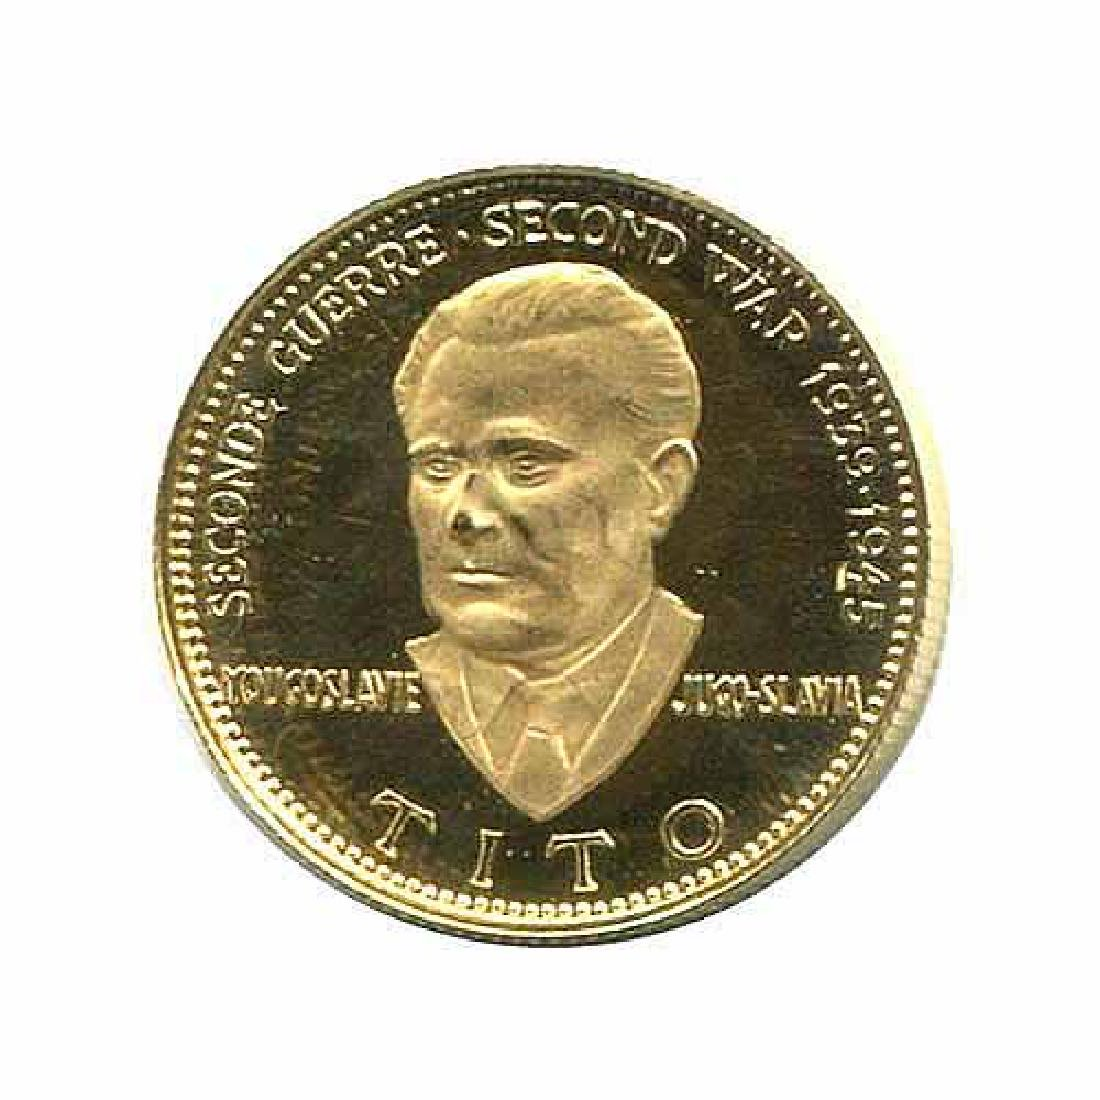 WWII Commemorative Proof Gold Medal 7g. 1958 Tito